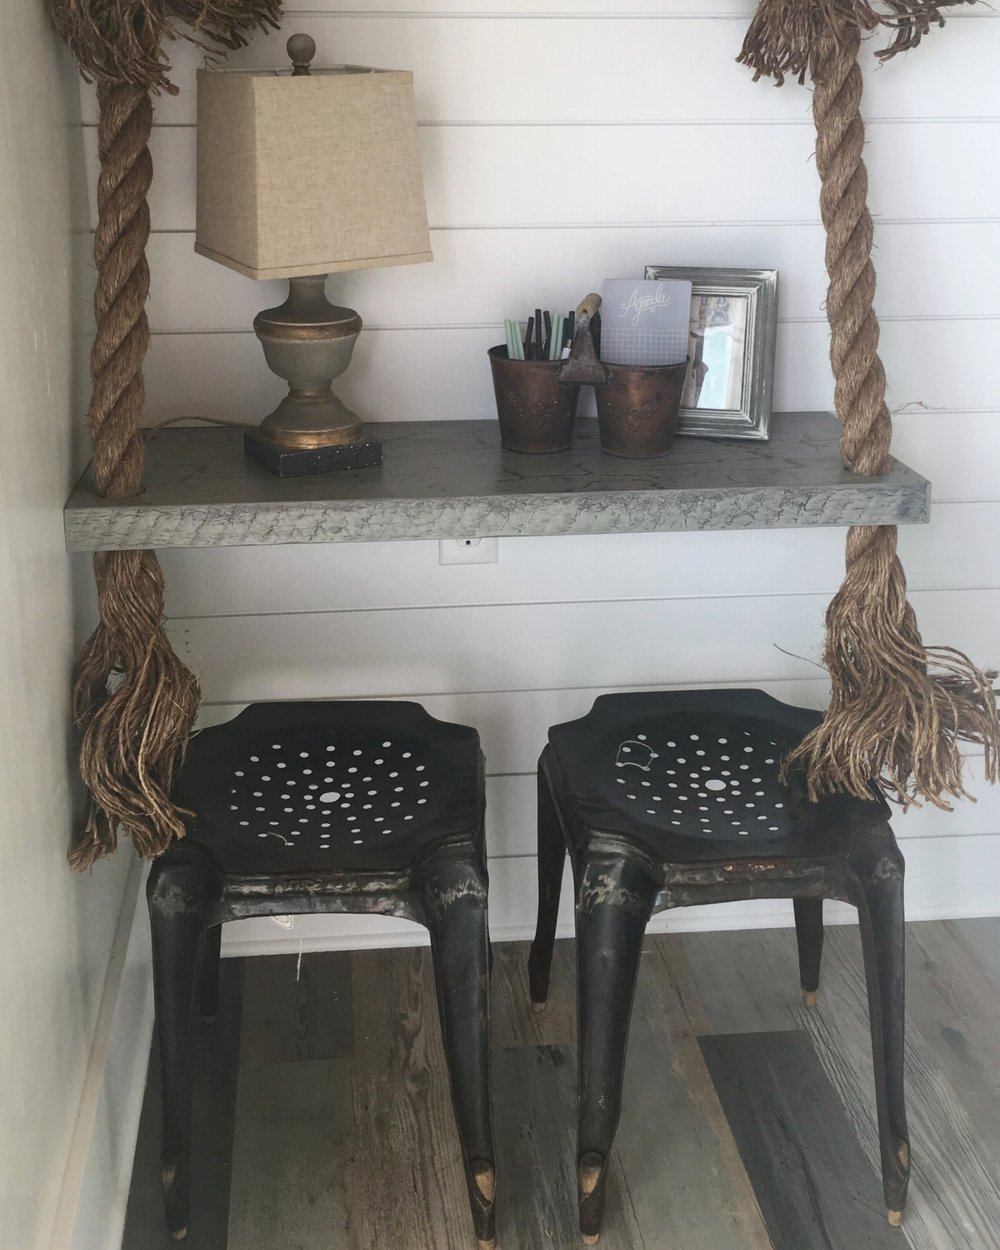 KBM_Farmhouse_Stool shelf.jpg